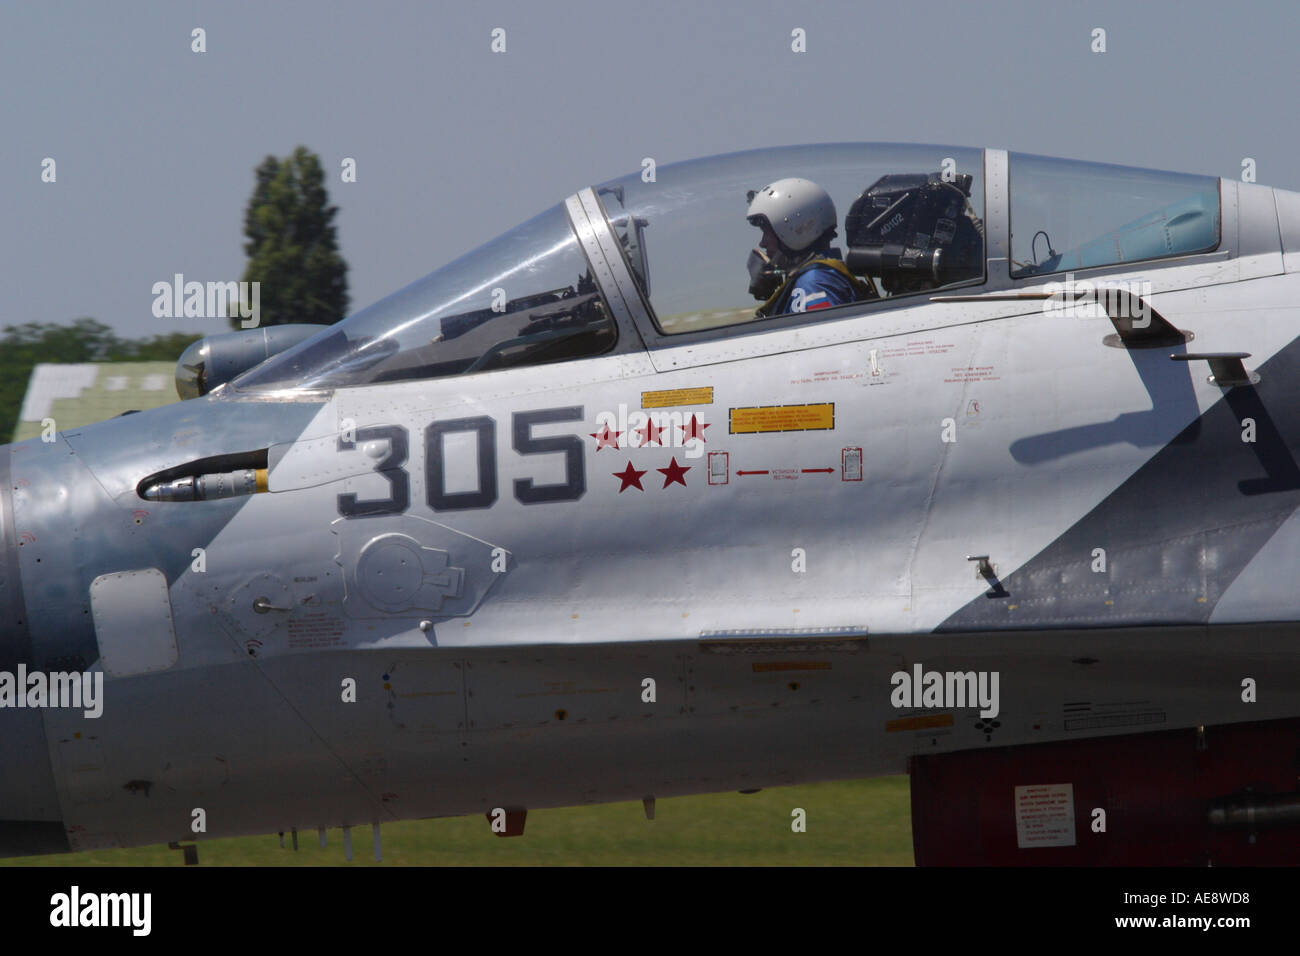 Russian built Sukhoi Su 27 air to air interceptor with pilot - Stock Image